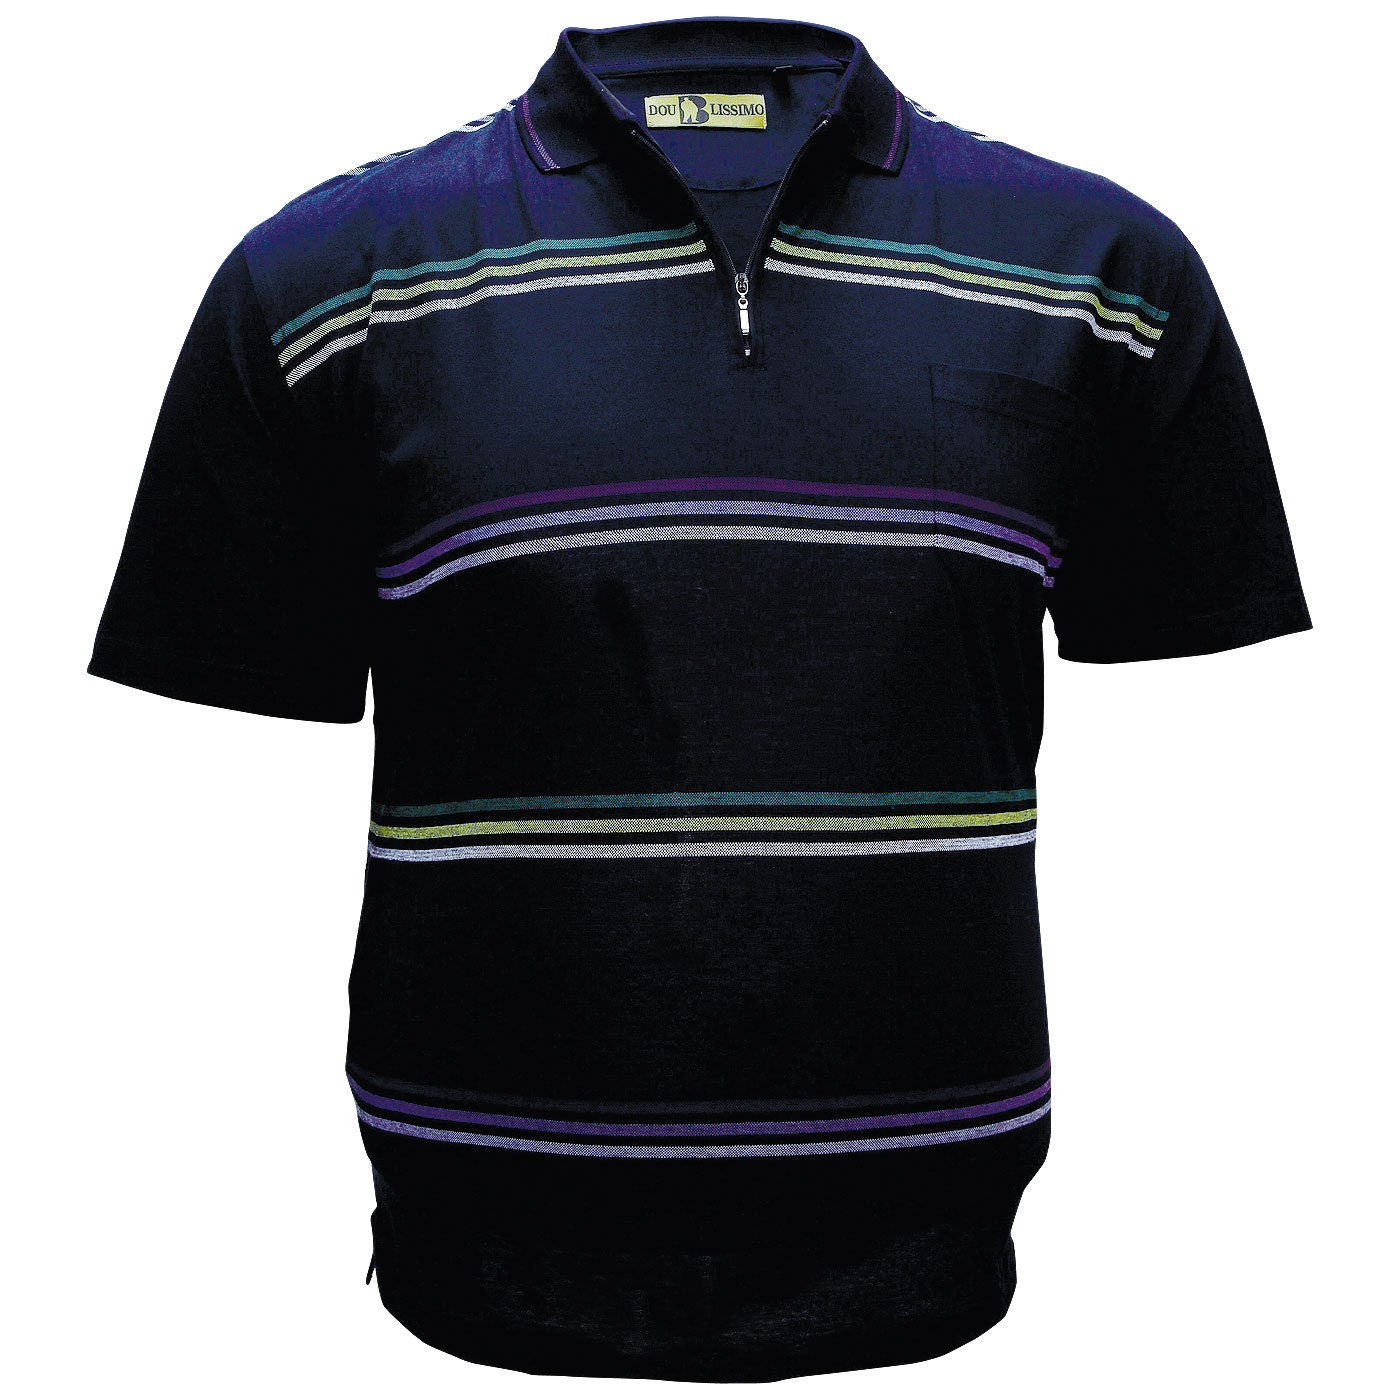 Chemise grande taille ou polo grande taille, que choisir ?